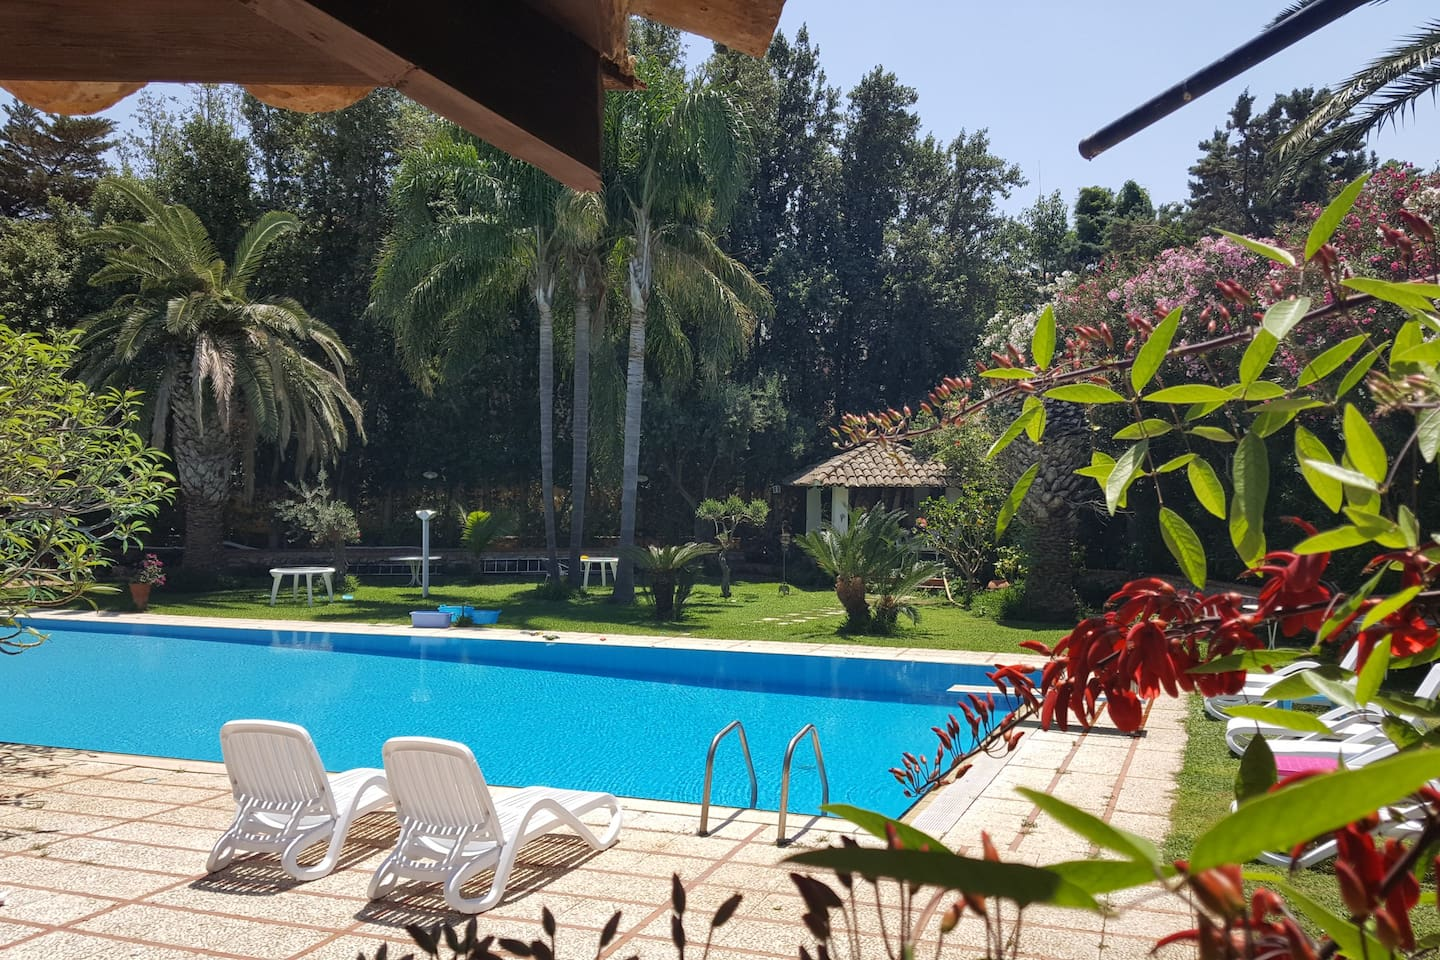 the pool is very big  measures: 22 meters x 9 . This large pool is surrounded by an incredible and magnificent garden